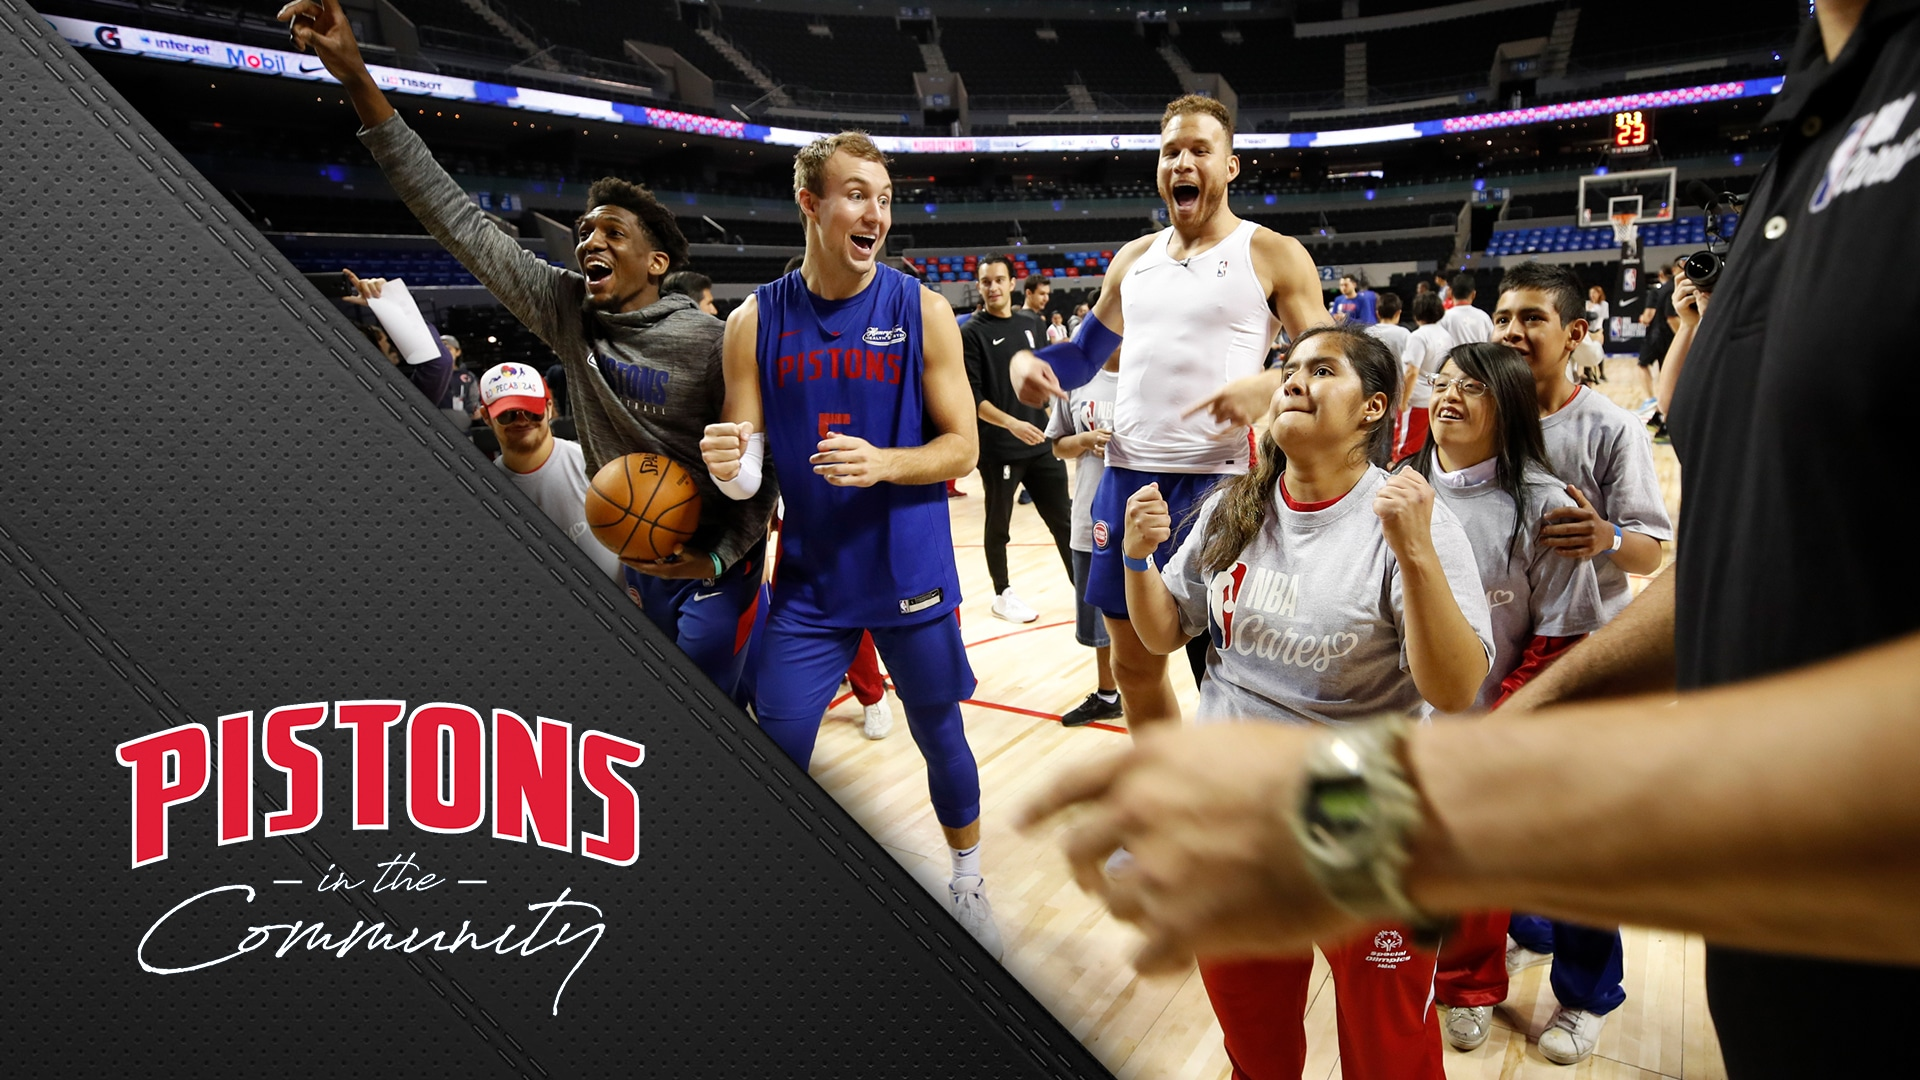 Pistons in the Community: Special Olympics Mexico Clinic